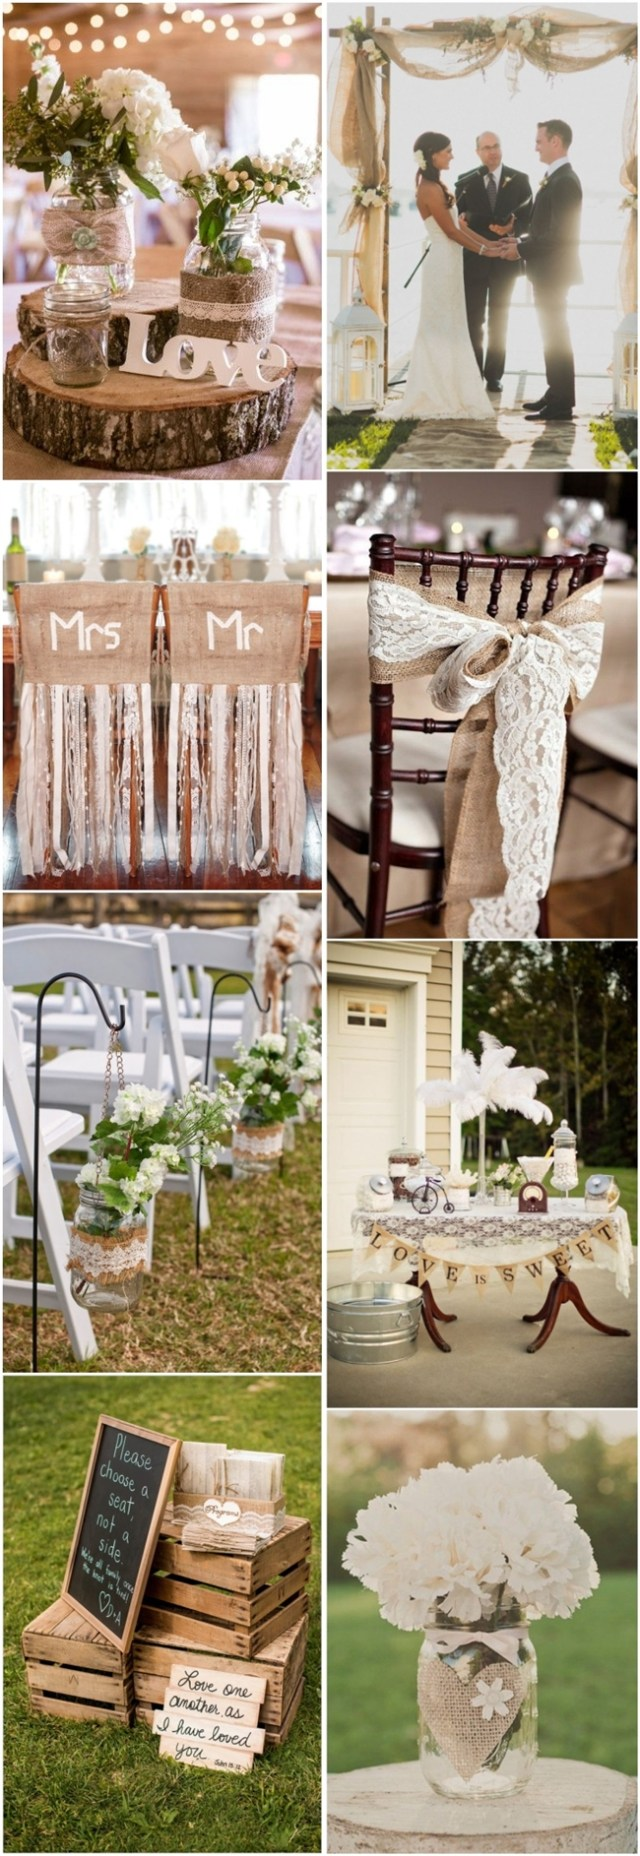 Simple Rustic Wedding Decor 45 Chic Rustic Burlap Lace Wedding Ideas And Inspiration Tulle